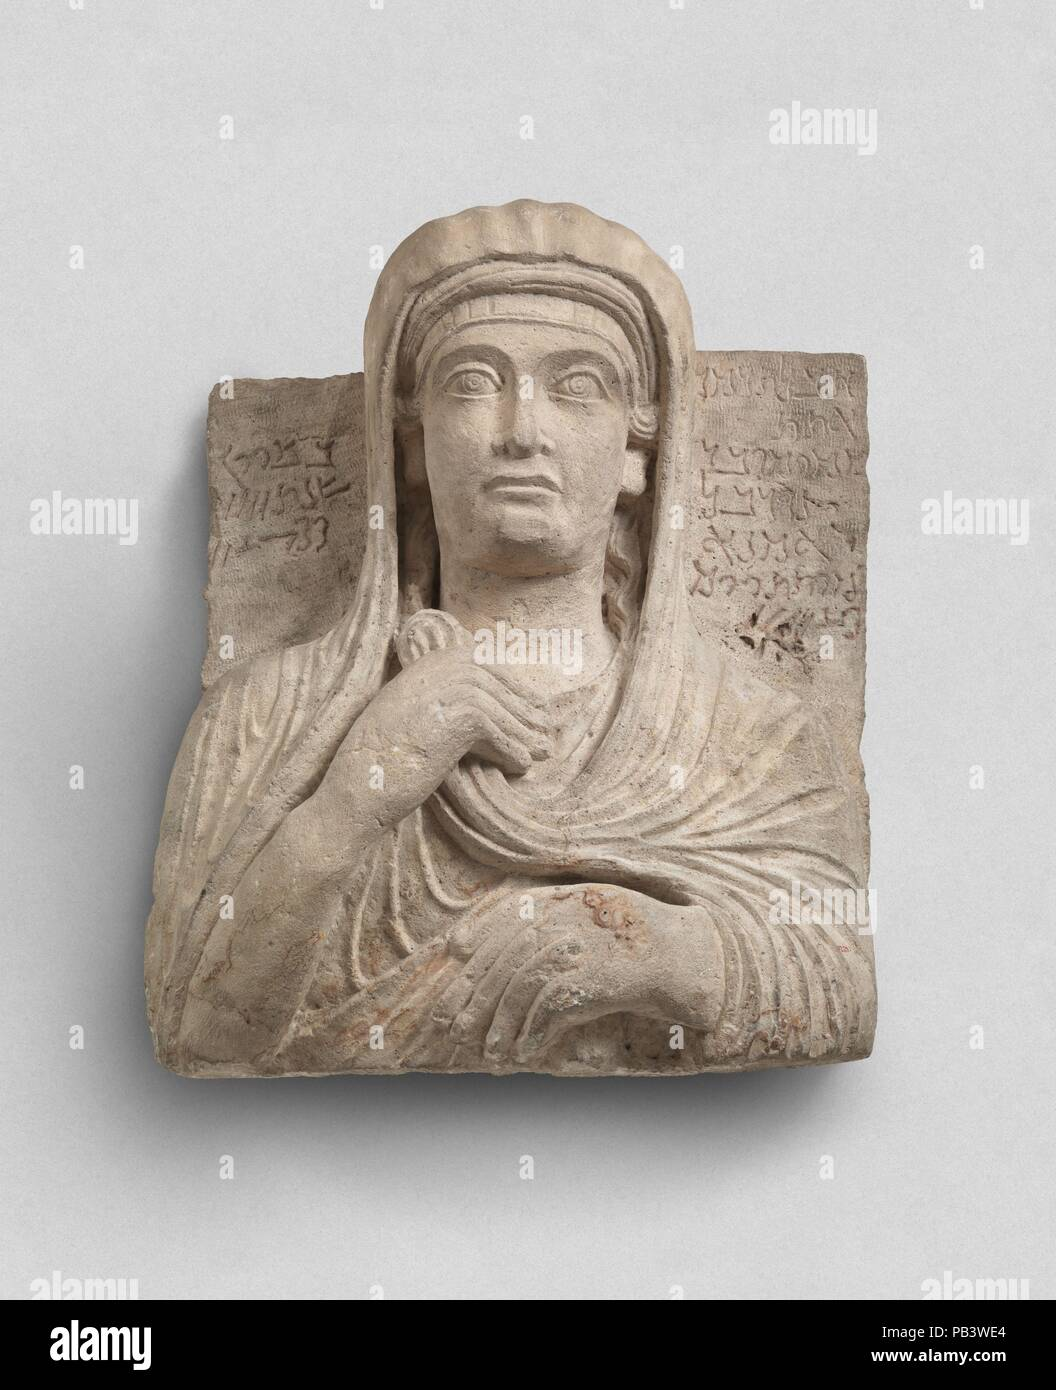 Funerary relief. Dimensions: 20.39 x 17.36 in. (51.79 x 44.09 cm). Date: ca. 148.  Inscription:  (at right)   1 Alas! Tadmur,   2 wife of   3 Mokimu, son of   4 Nurbel,   5 the craftsman.   6 Died the   7 29th day   (at left)   8 of Siwan,   9 in the year   10 459.  Transliteration:  1 hbl tdmr  2 ?tt  3 mqymw br  4 nwrbl  5 ?mn?  6 mytt yw!m  7 20+5+4  8 bsyw!n  9 snt 4.[100]  10 +40+10+5+2  This relief is a type of funerary monument characteristic of the prosperous caravan city of Palmyra during the first three centuries A.D. Reliefs with a representation of the deceased and a short identify - Stock Image